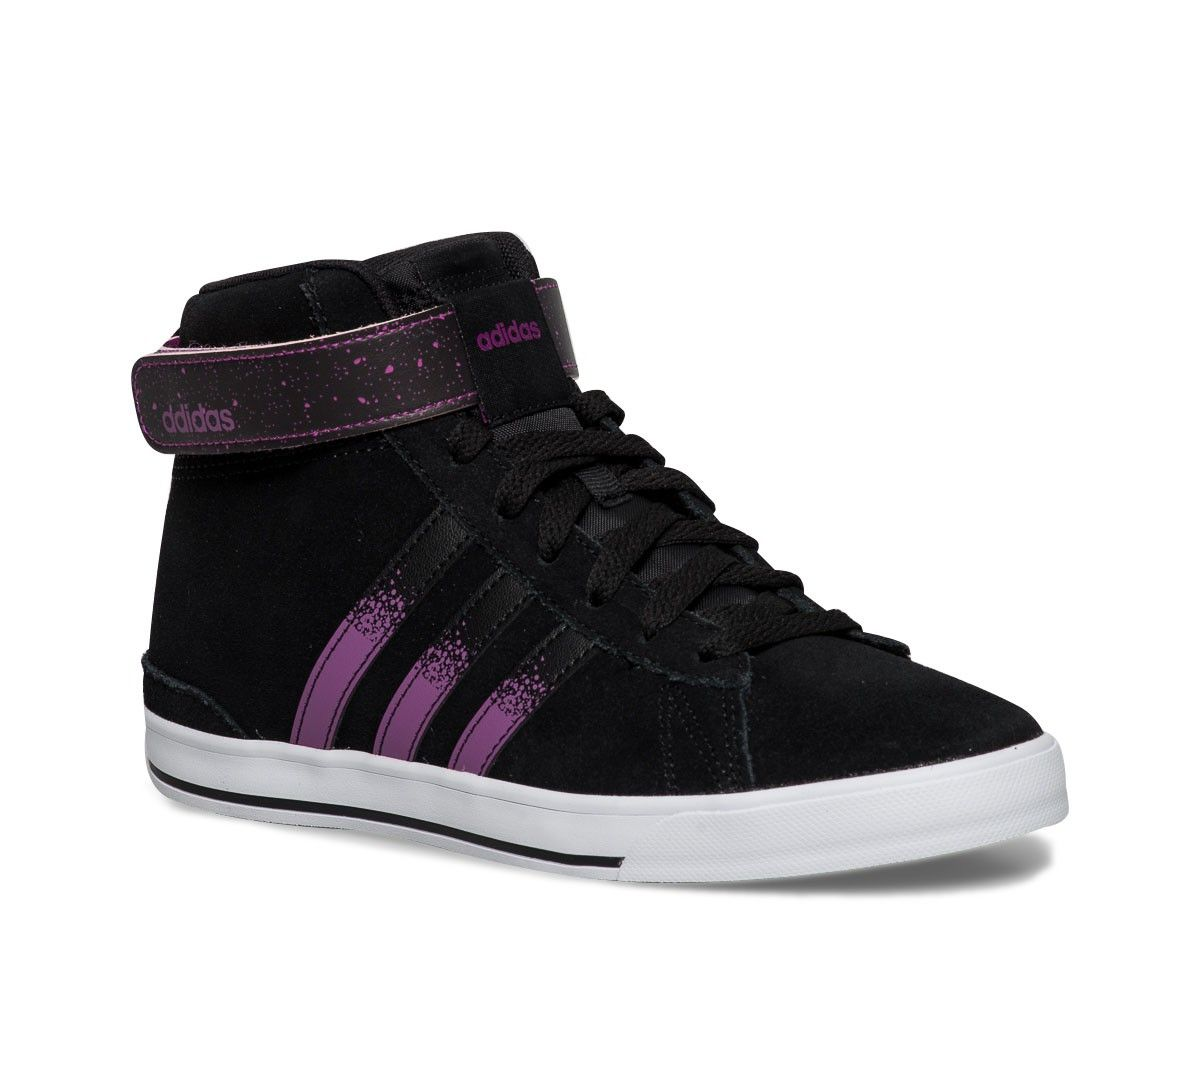 adidas femme chaussure montante